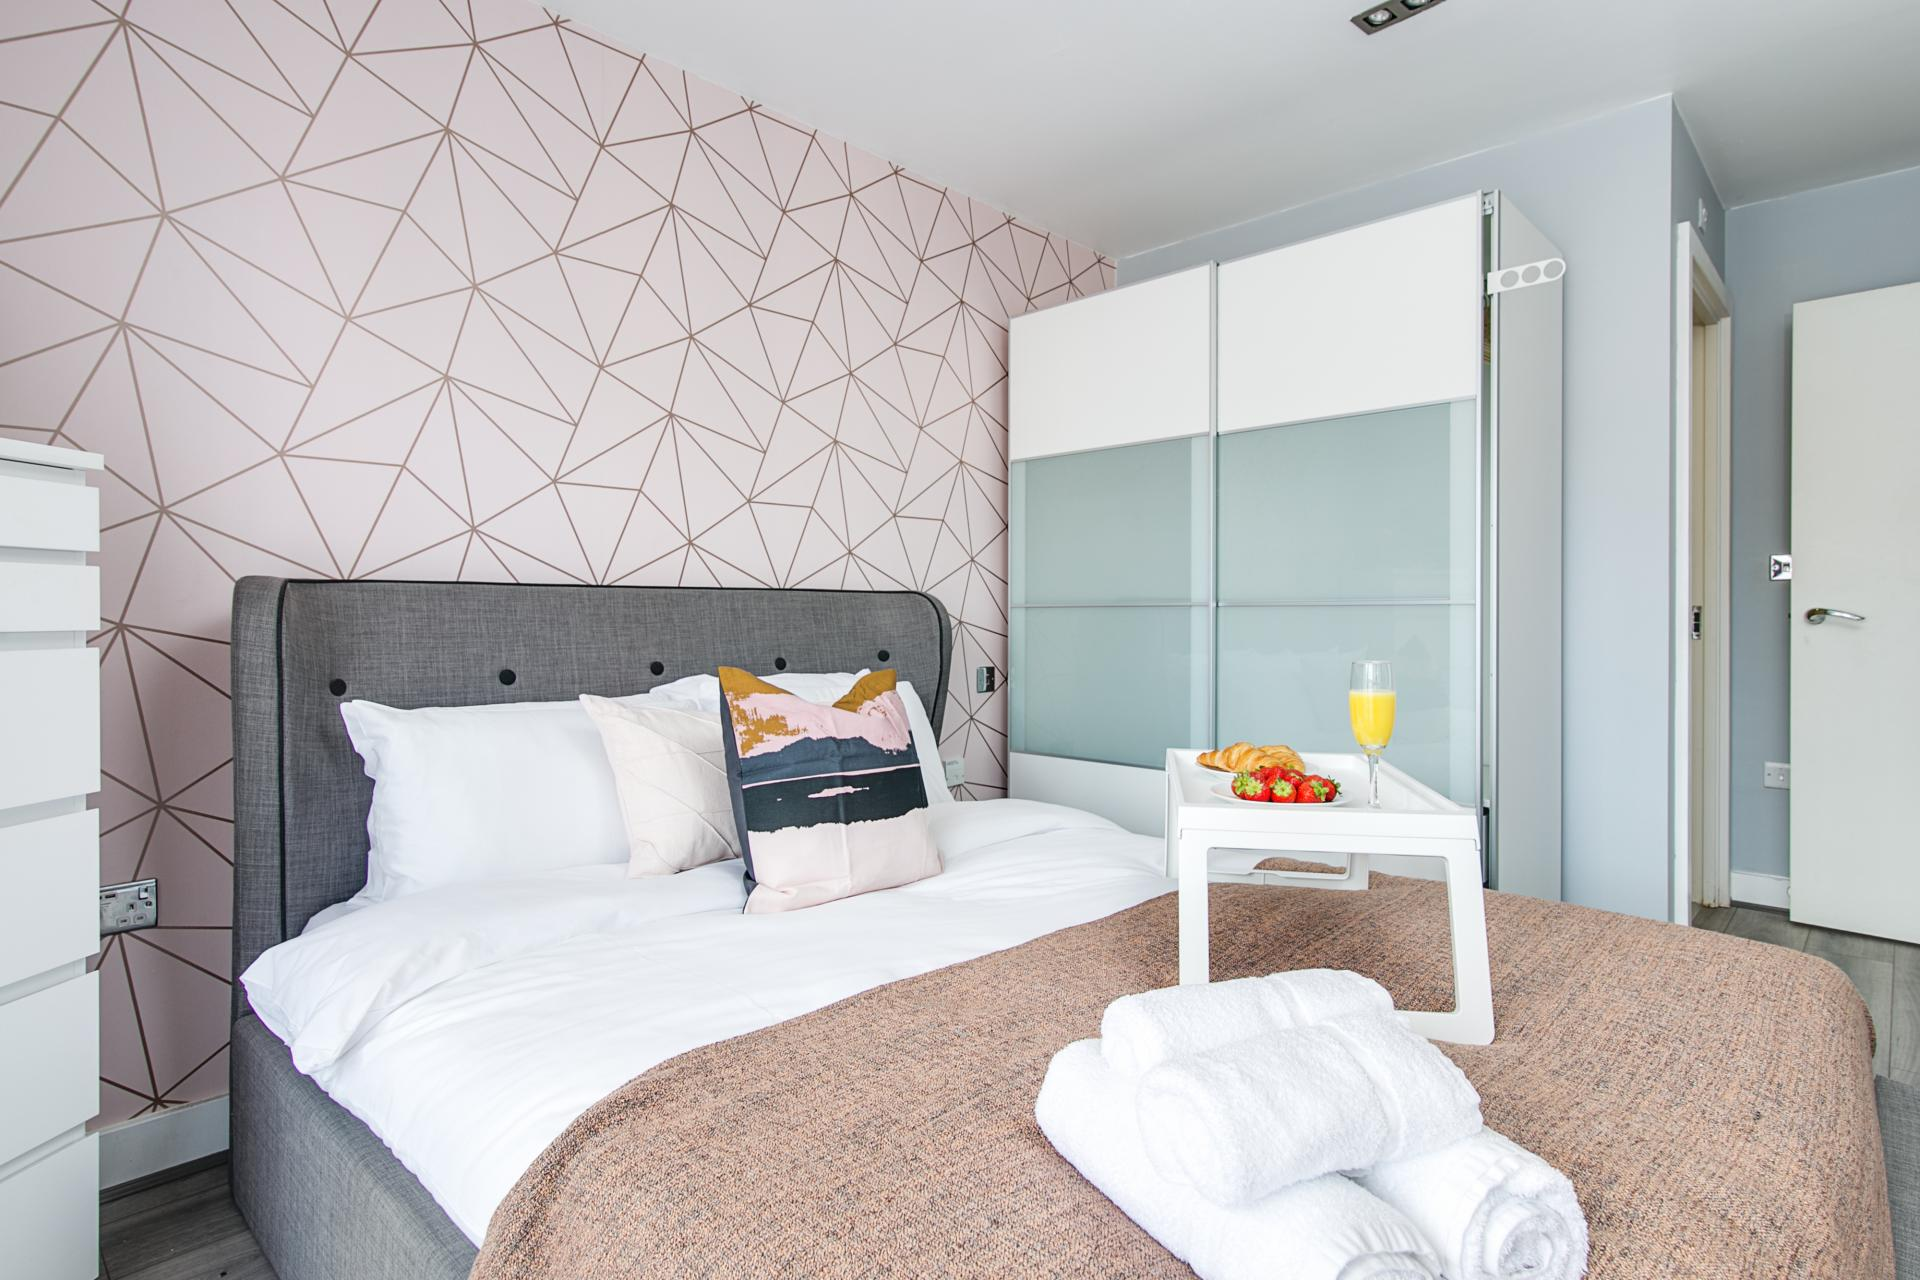 Bedroom at Canal Muse Apartment, Newtown, Birmingham